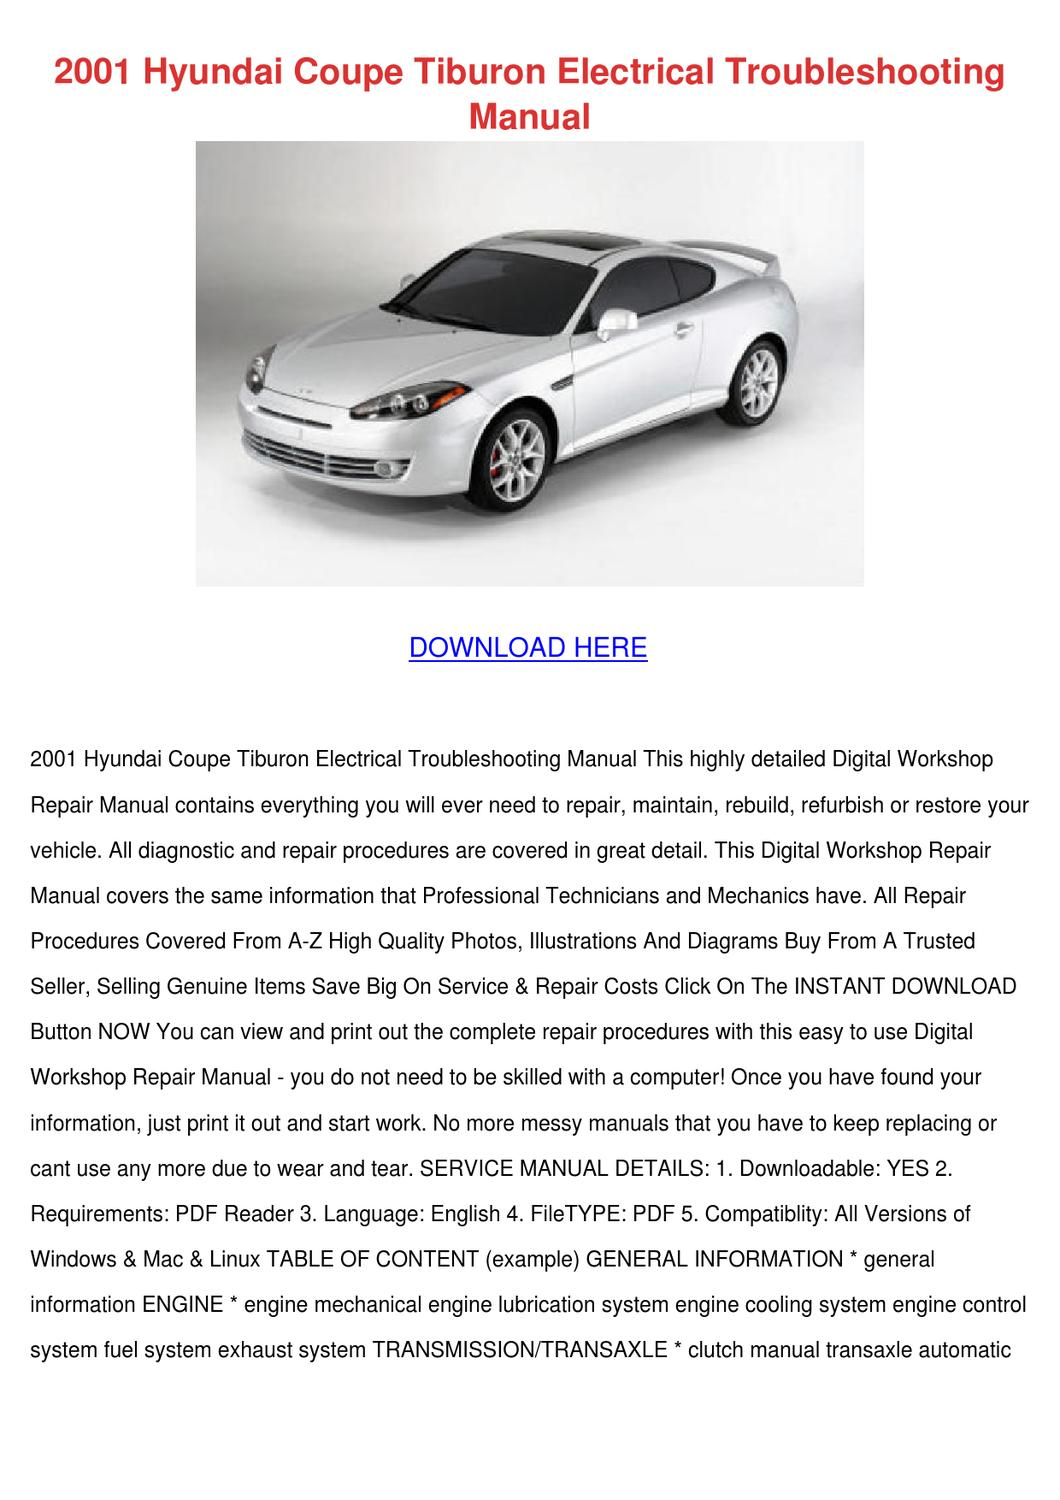 2001 Hyundai Coupe Tiburon Electrical Trouble by ChristelBrubaker - issuu